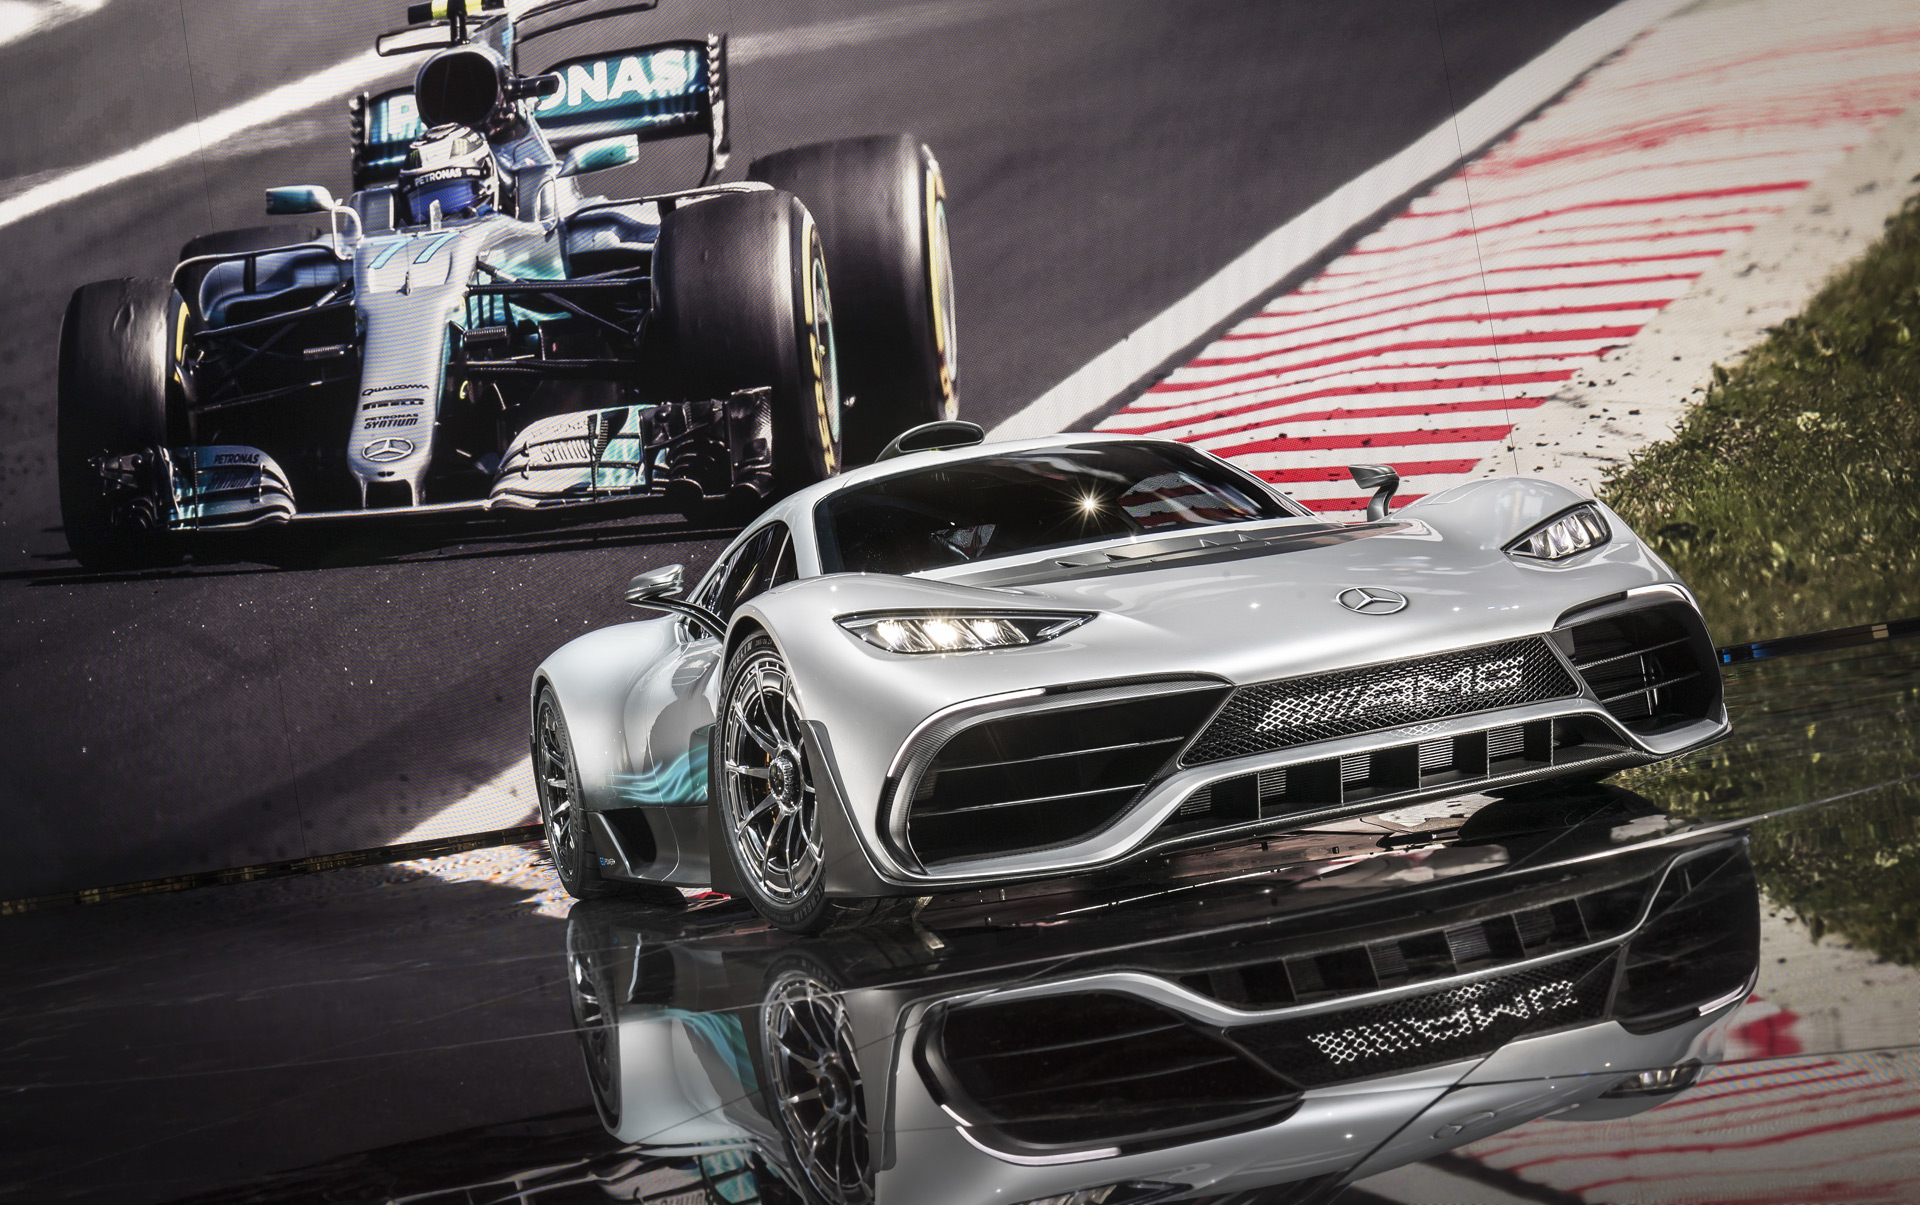 mercedes amg 39 s project one has landed and its f1 powertrain has over 1 000 hp. Black Bedroom Furniture Sets. Home Design Ideas